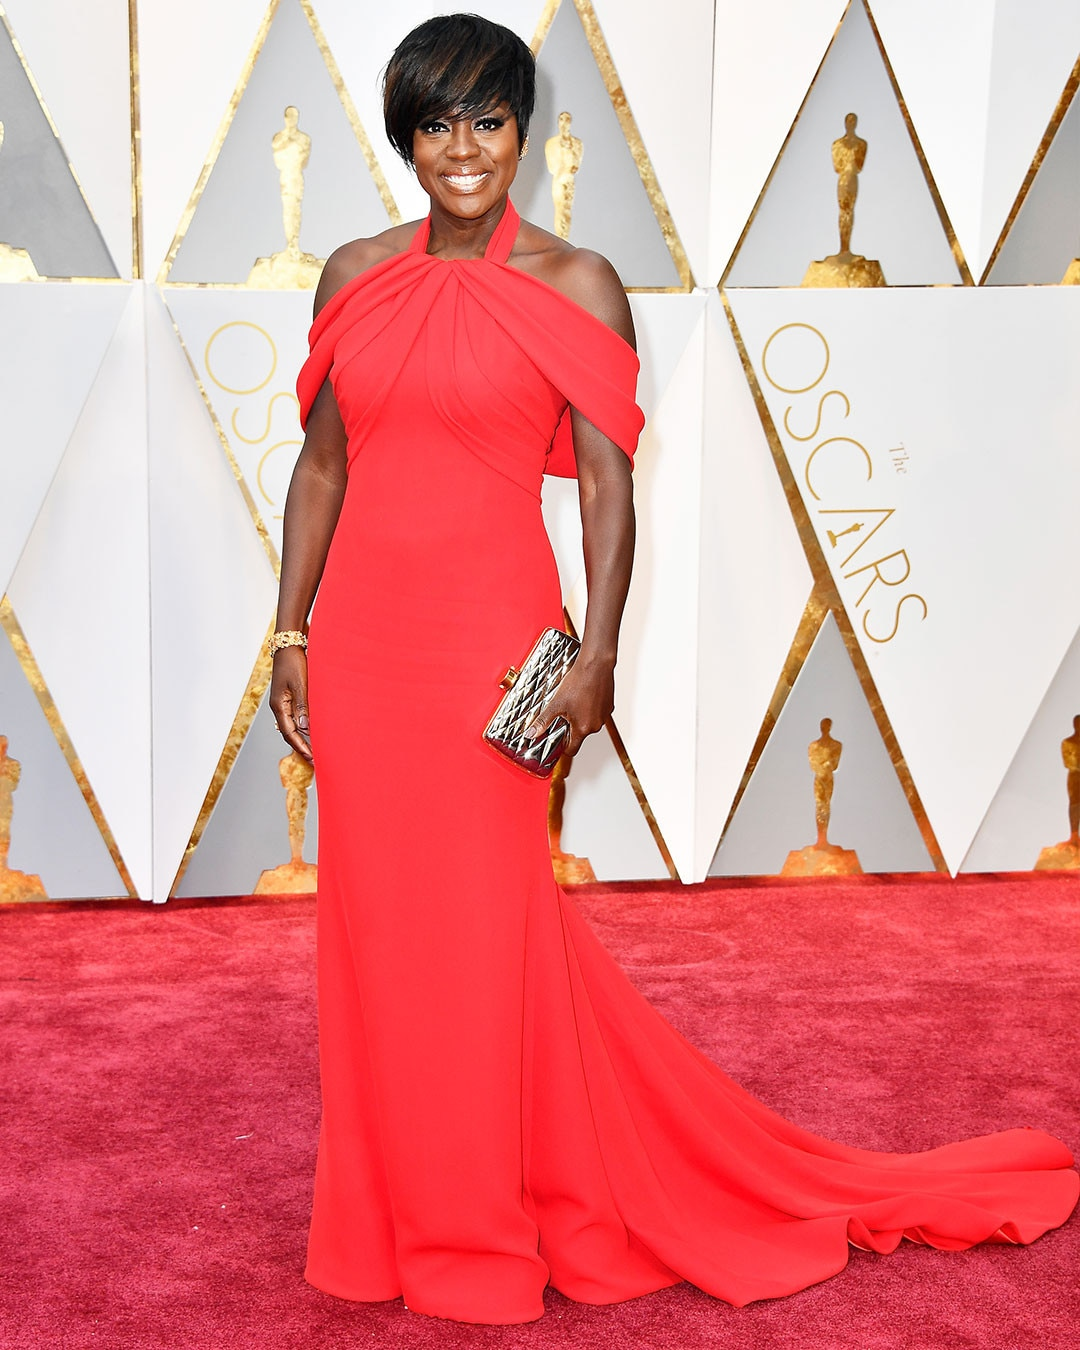 https://i0.wp.com/akns-images.eonline.com/eol_images/Entire_Site/2017126/rs_1080x1350-170226165527-1080.Viola-Davis-Oscars-Hollywood.kg.022617.jpg